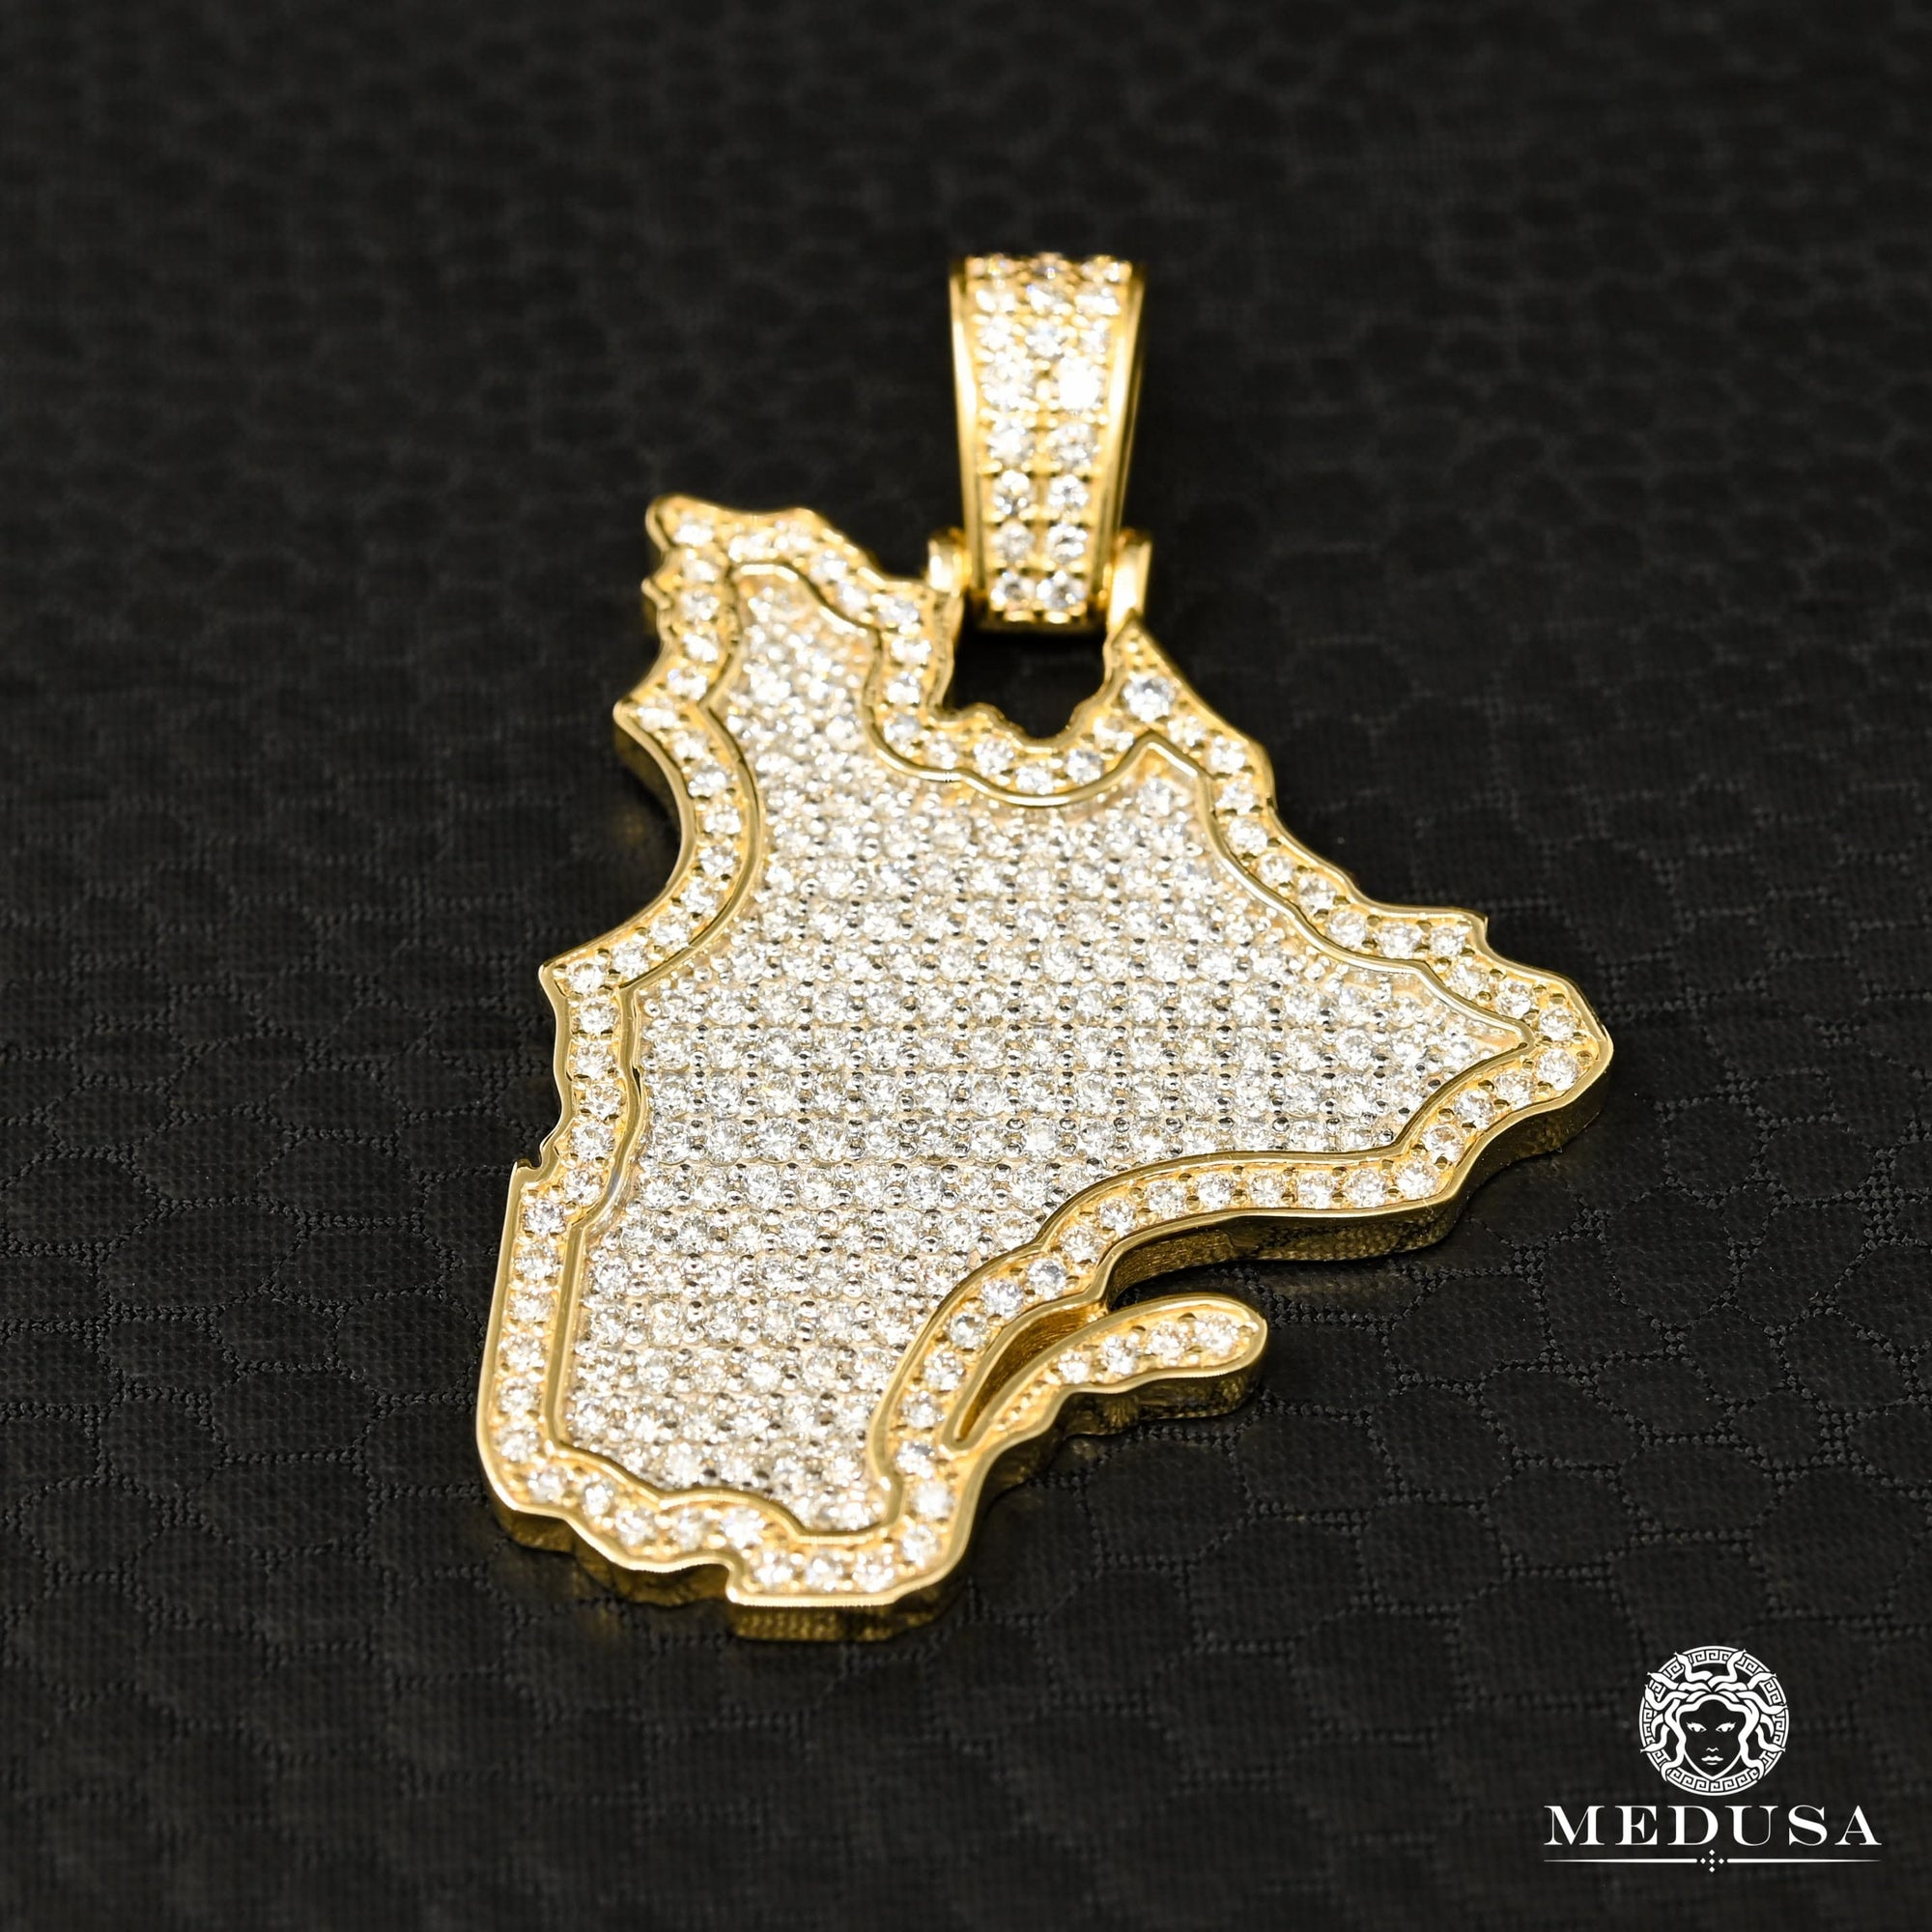 Pendentif à Diamants en Or 10K | Pendentif Divers Quebec D1 - Diamant Or Jaune